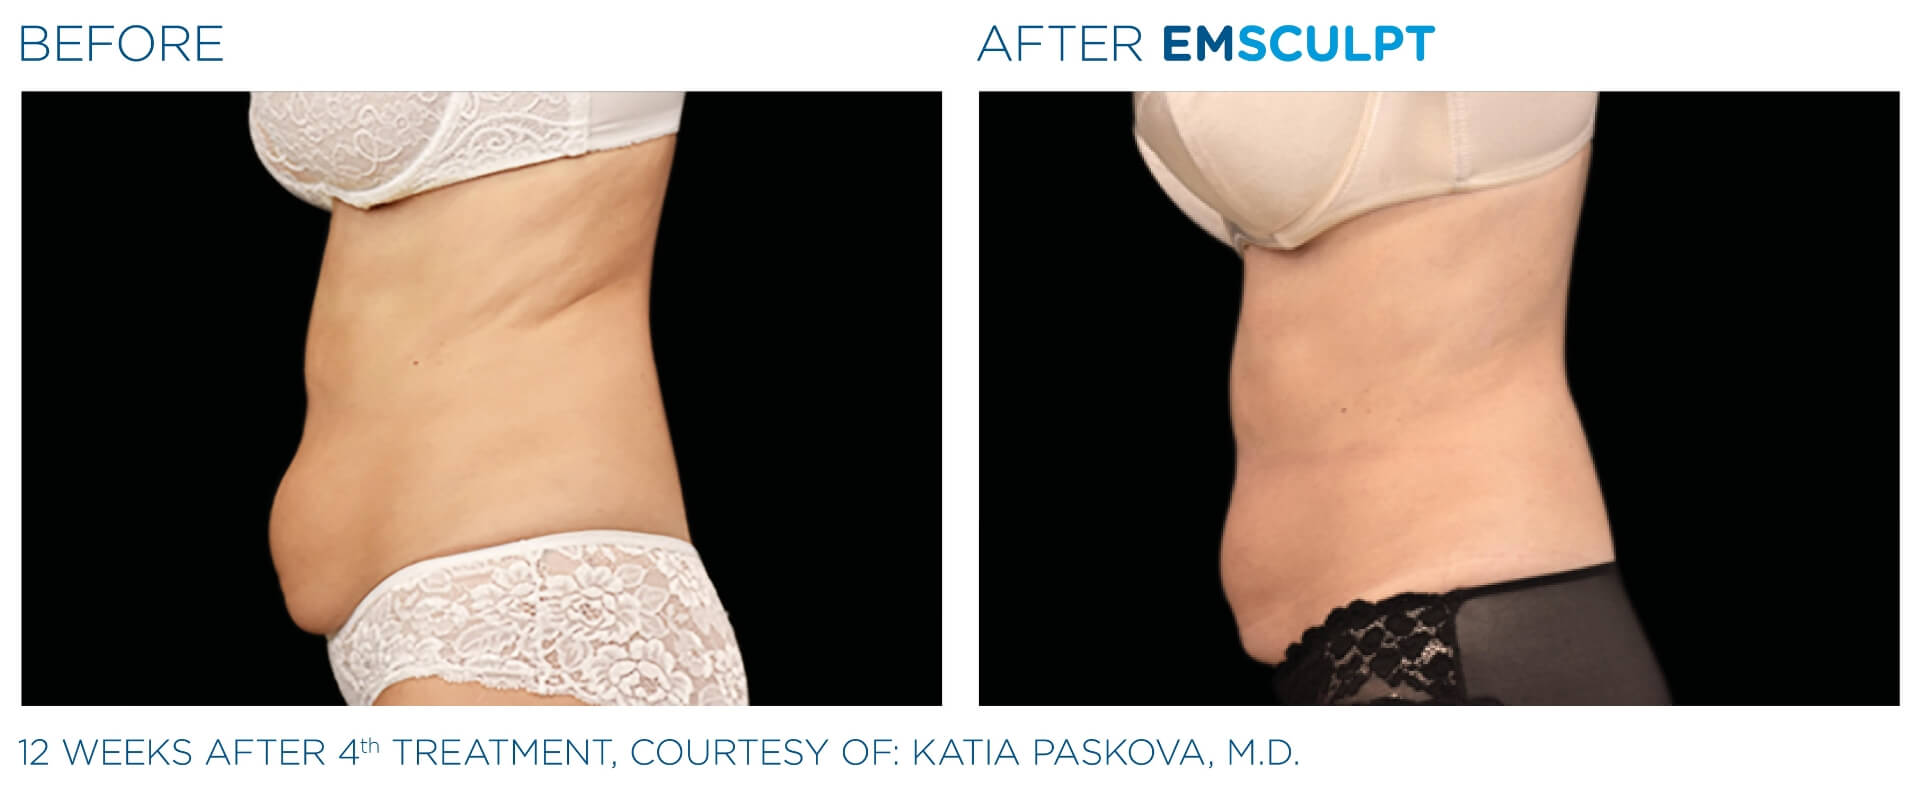 emsculpt before and after the sophia medspa in sudbury